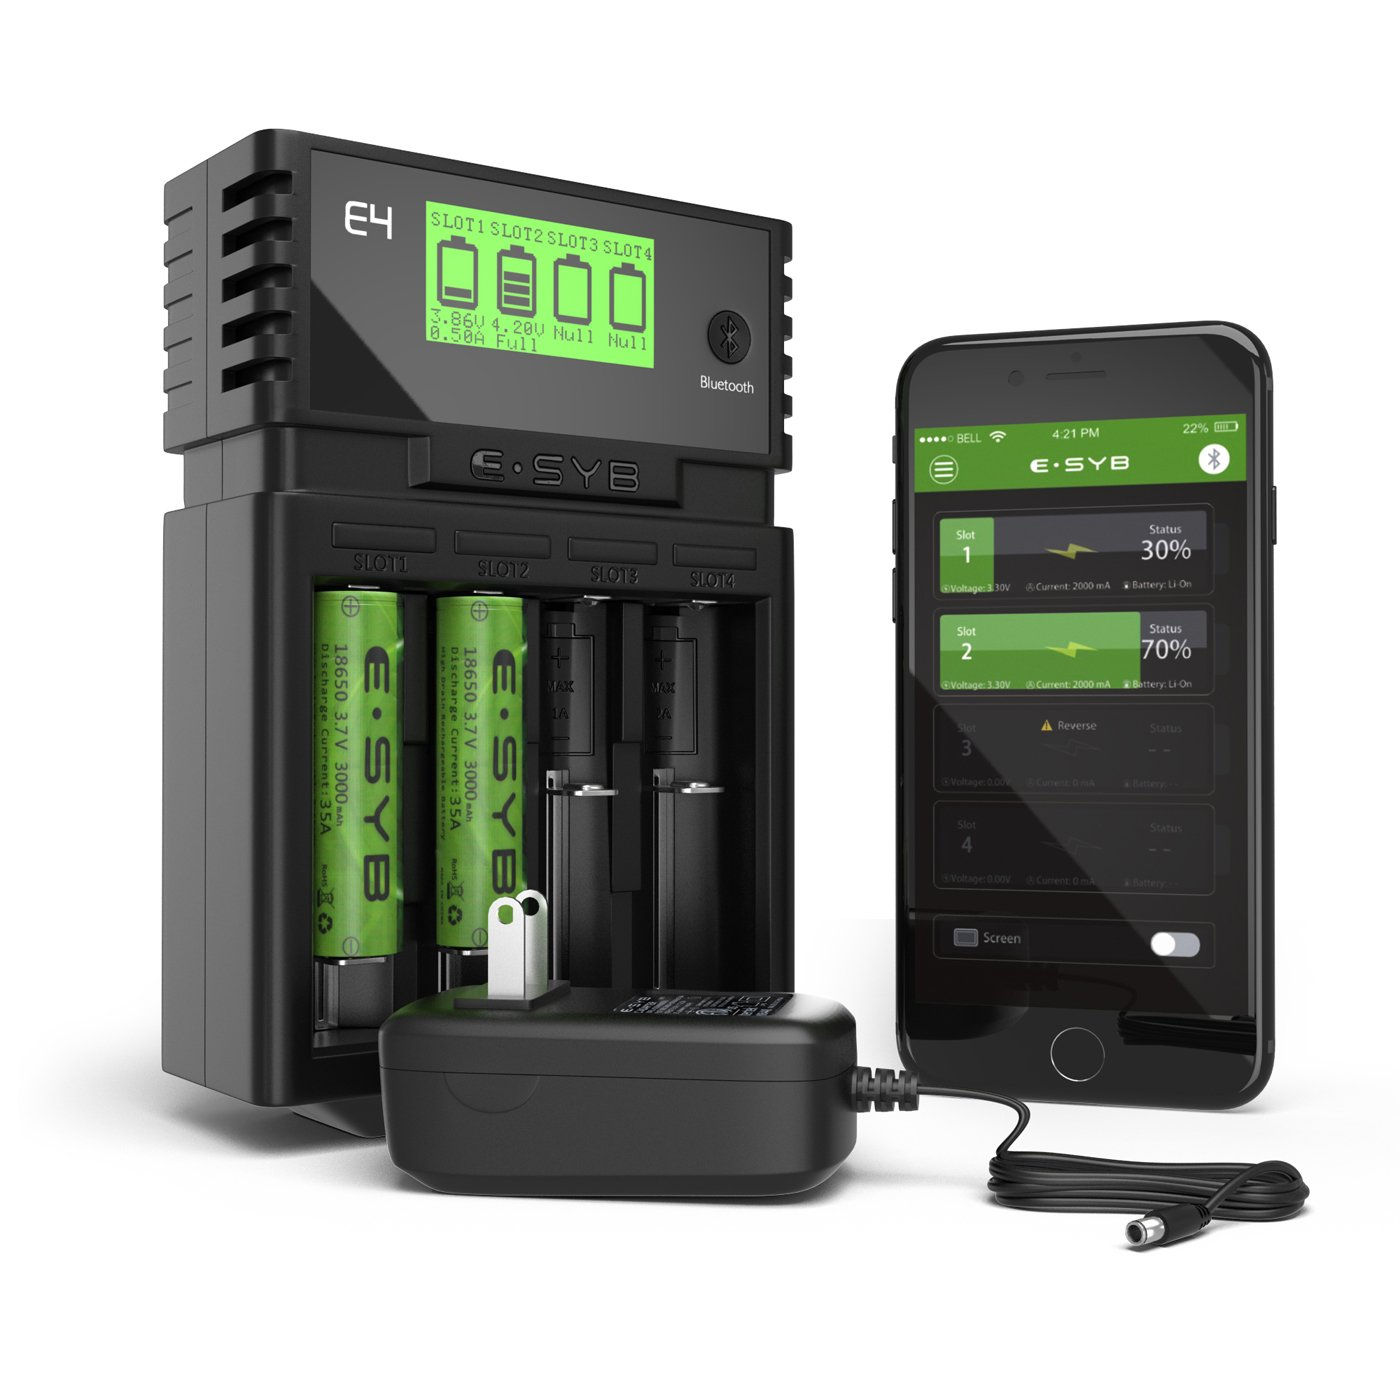 ESYB E4 18650 Intelligent Charger 4 Bay, USB Universal Battery Charger With APP Display and Bluetooth, Rechargeable Battery Charger For vtc6, vtc5, 25R, 30Q, Power Bank